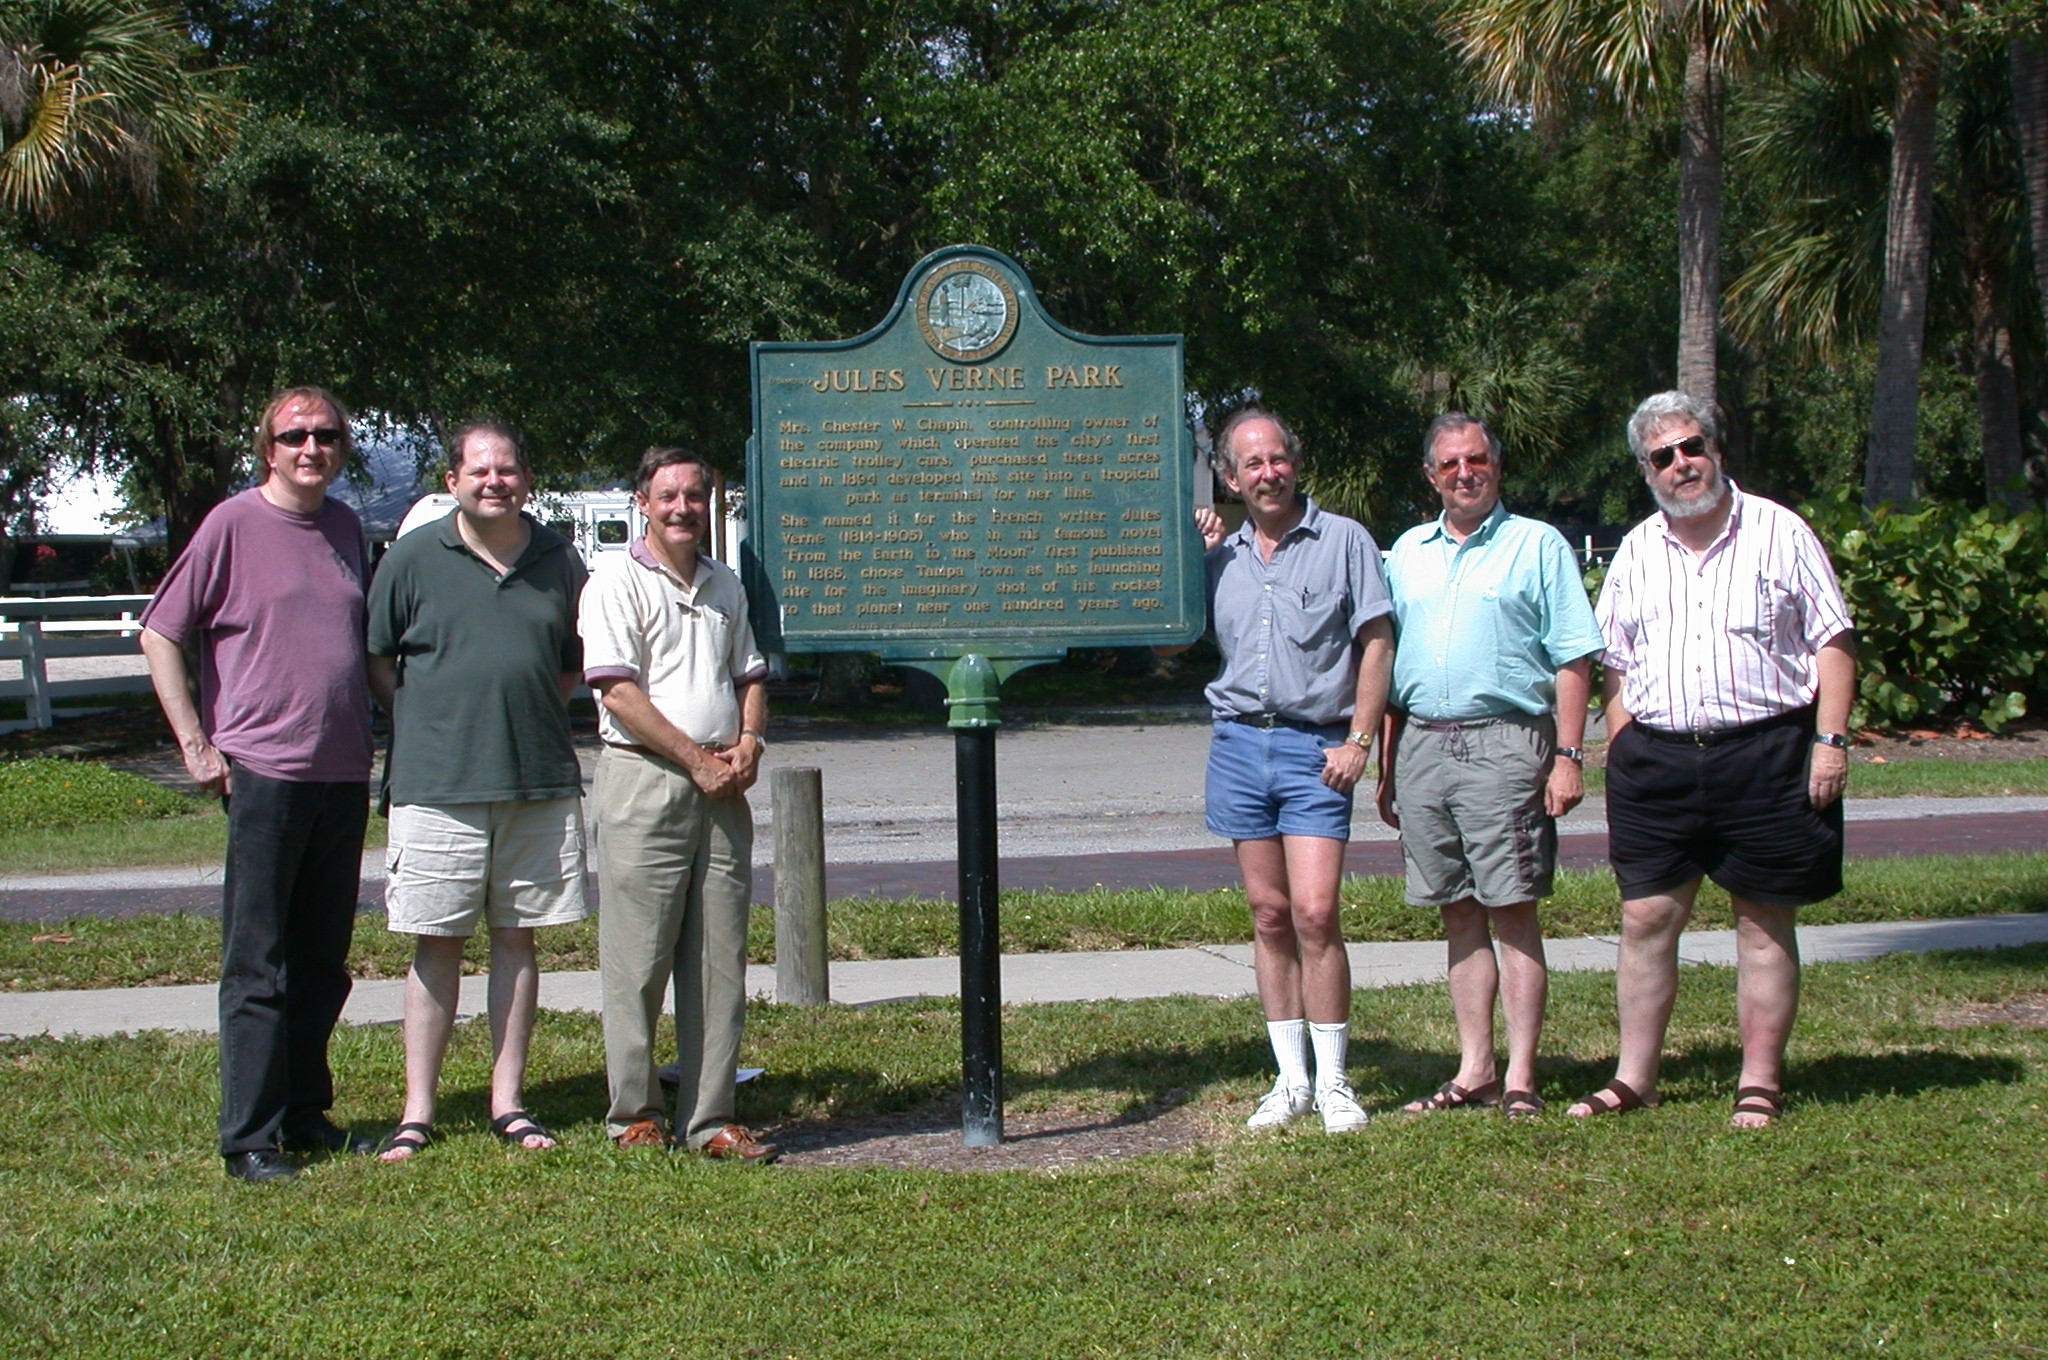 DSCN0059.jpg - Myself, Brian T., David, Rick, Michel & Jean-Michel made the trip to the park.